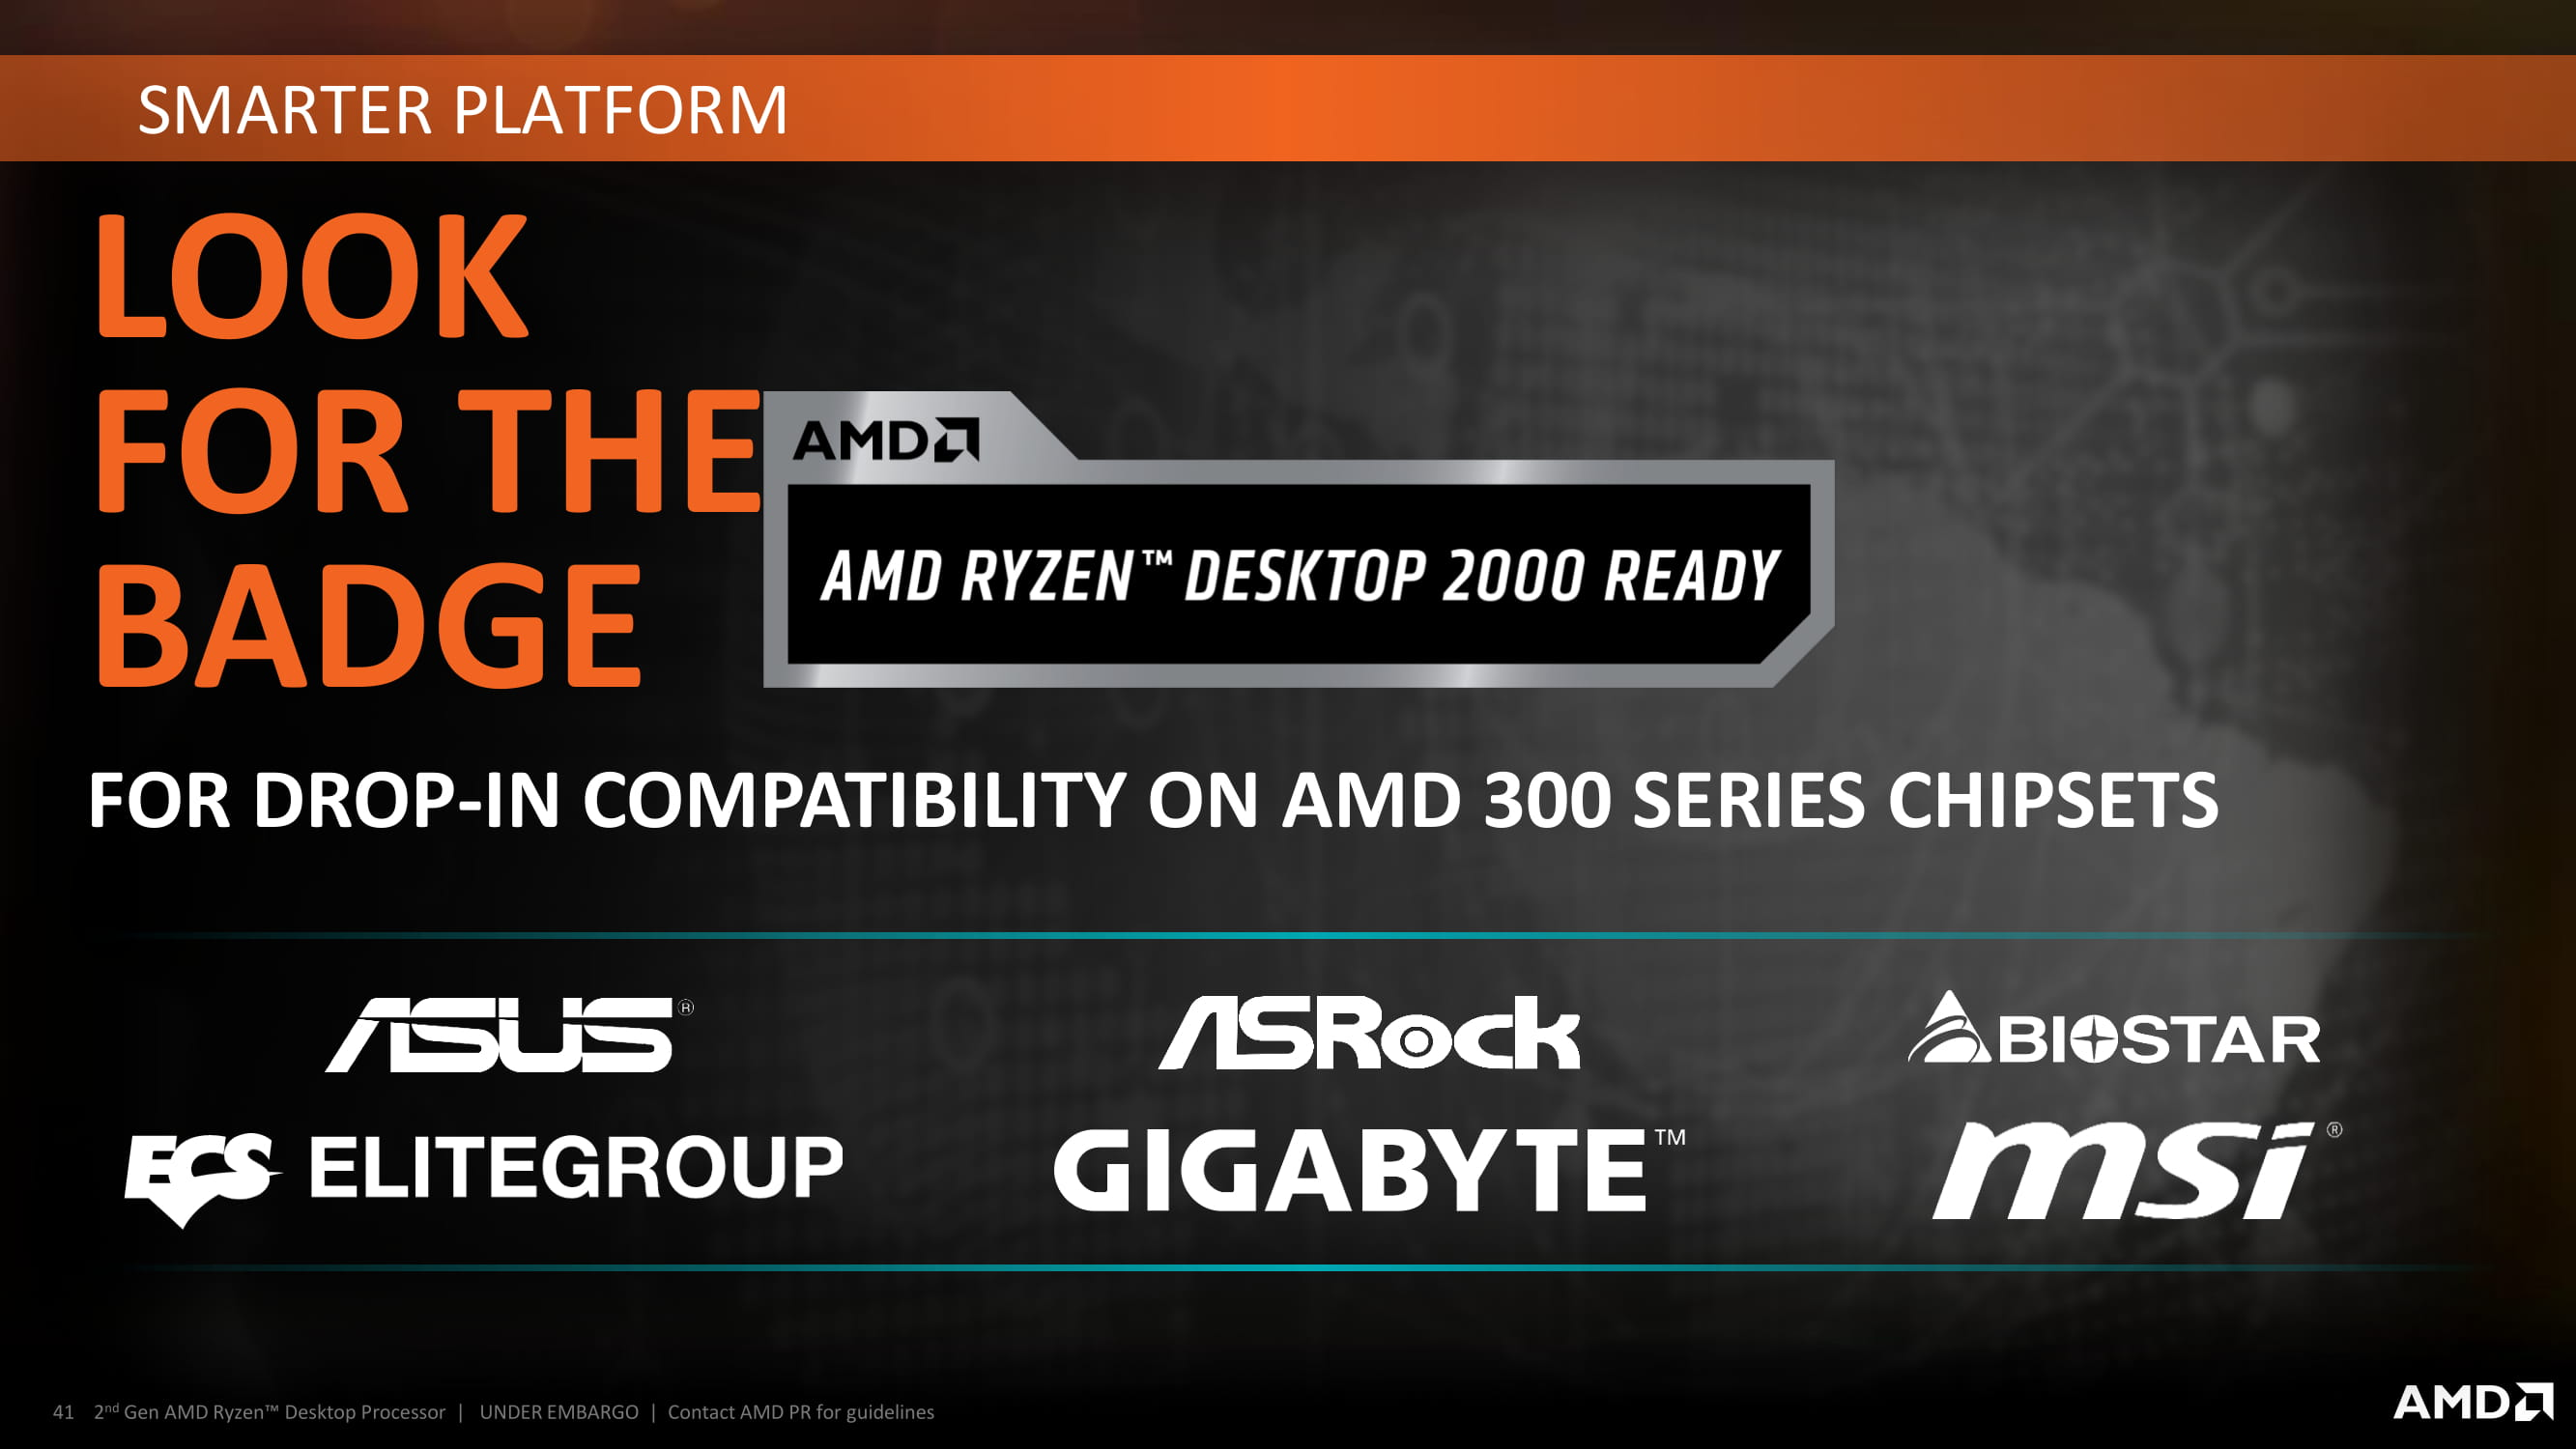 2nd Gen AMD Ryzen Desktop Processor-2-41.jpg